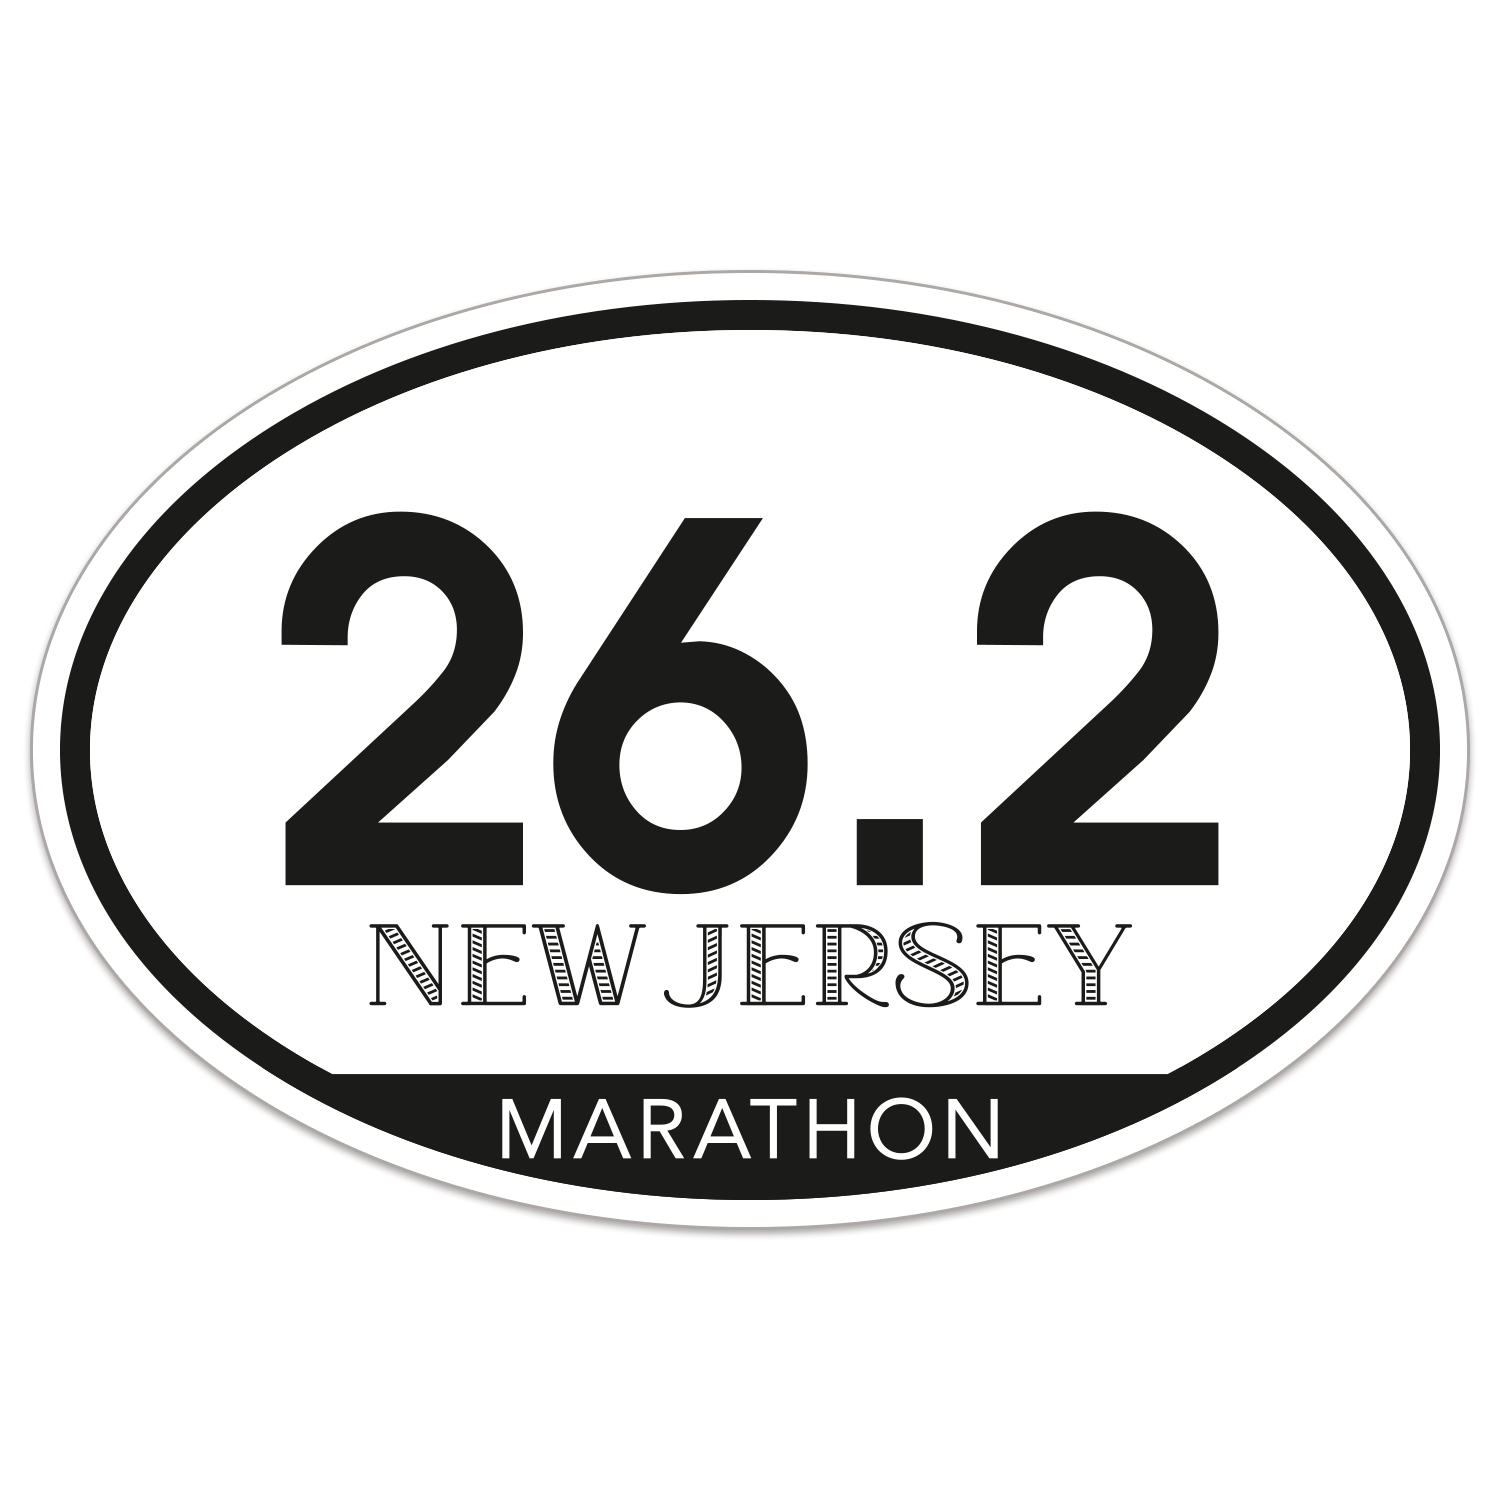 https://www.sswprinting.com/images/products_gallery_images/40802_New-Jersey-Marathon_hi-res38.png